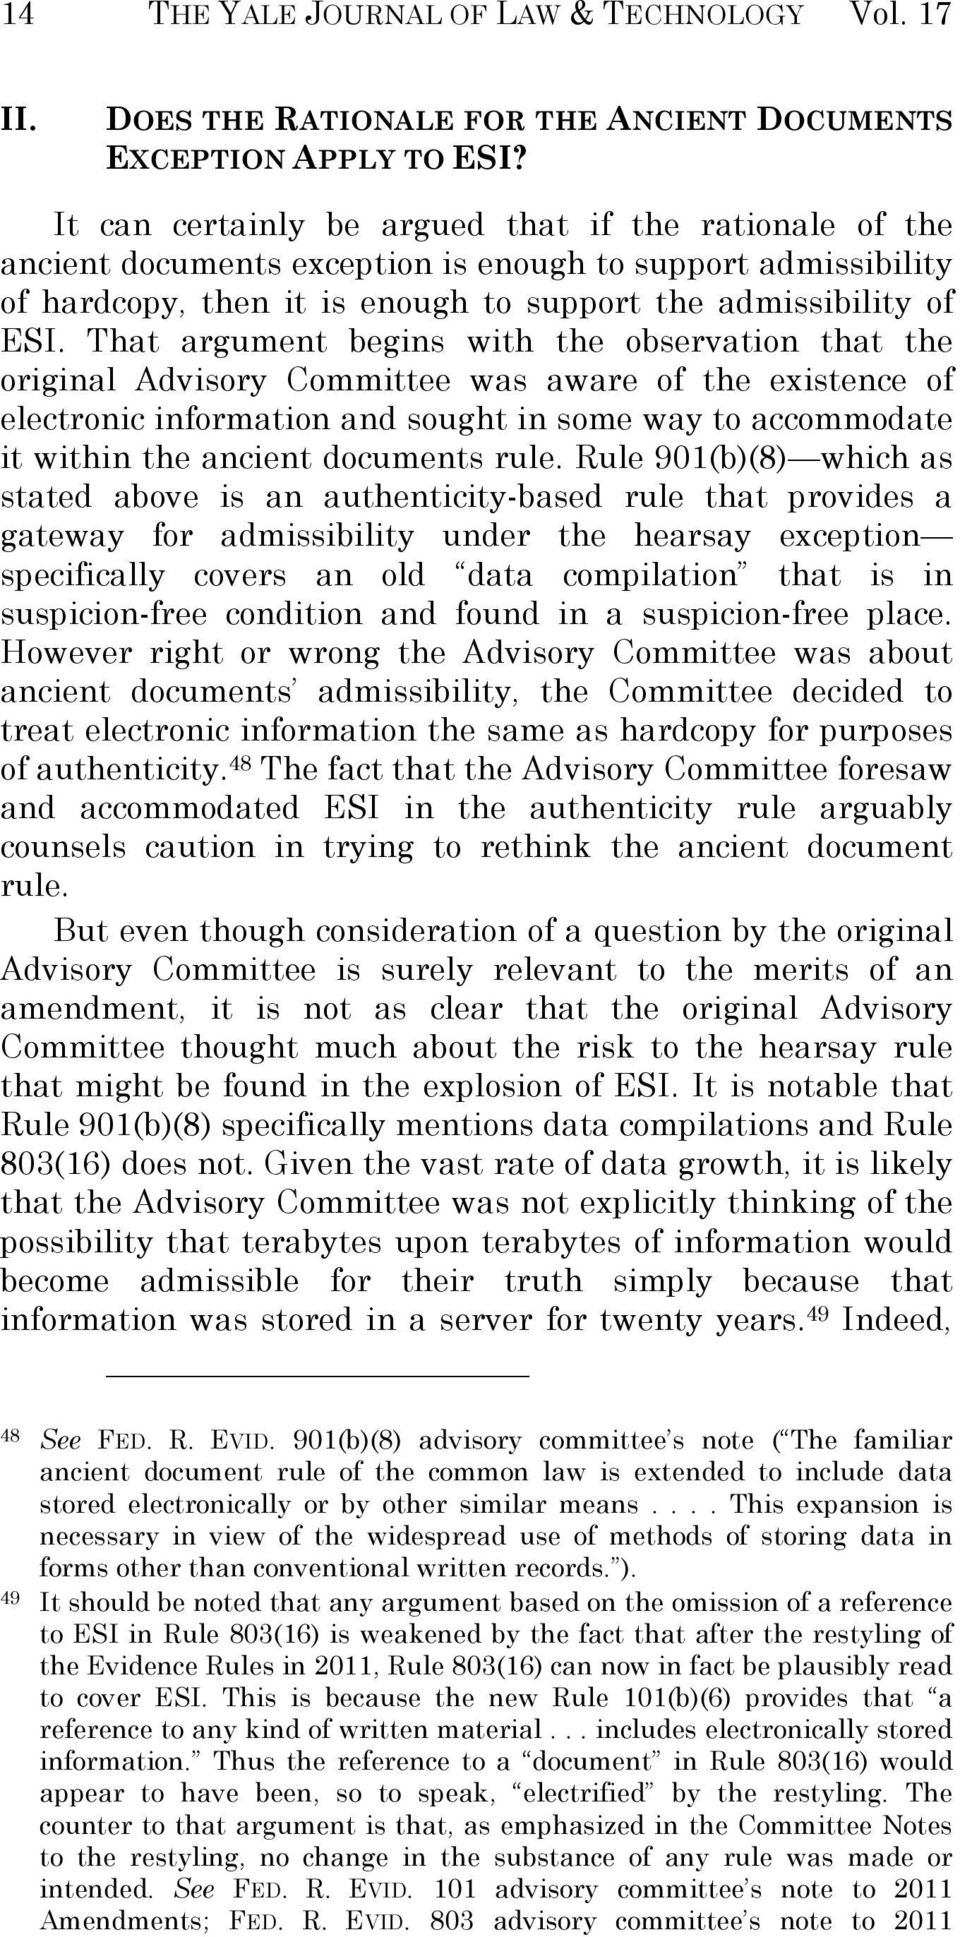 That argument begins with the observation that the original Advisory Committee was aware of the existence of electronic information and sought in some way to accommodate it within the ancient